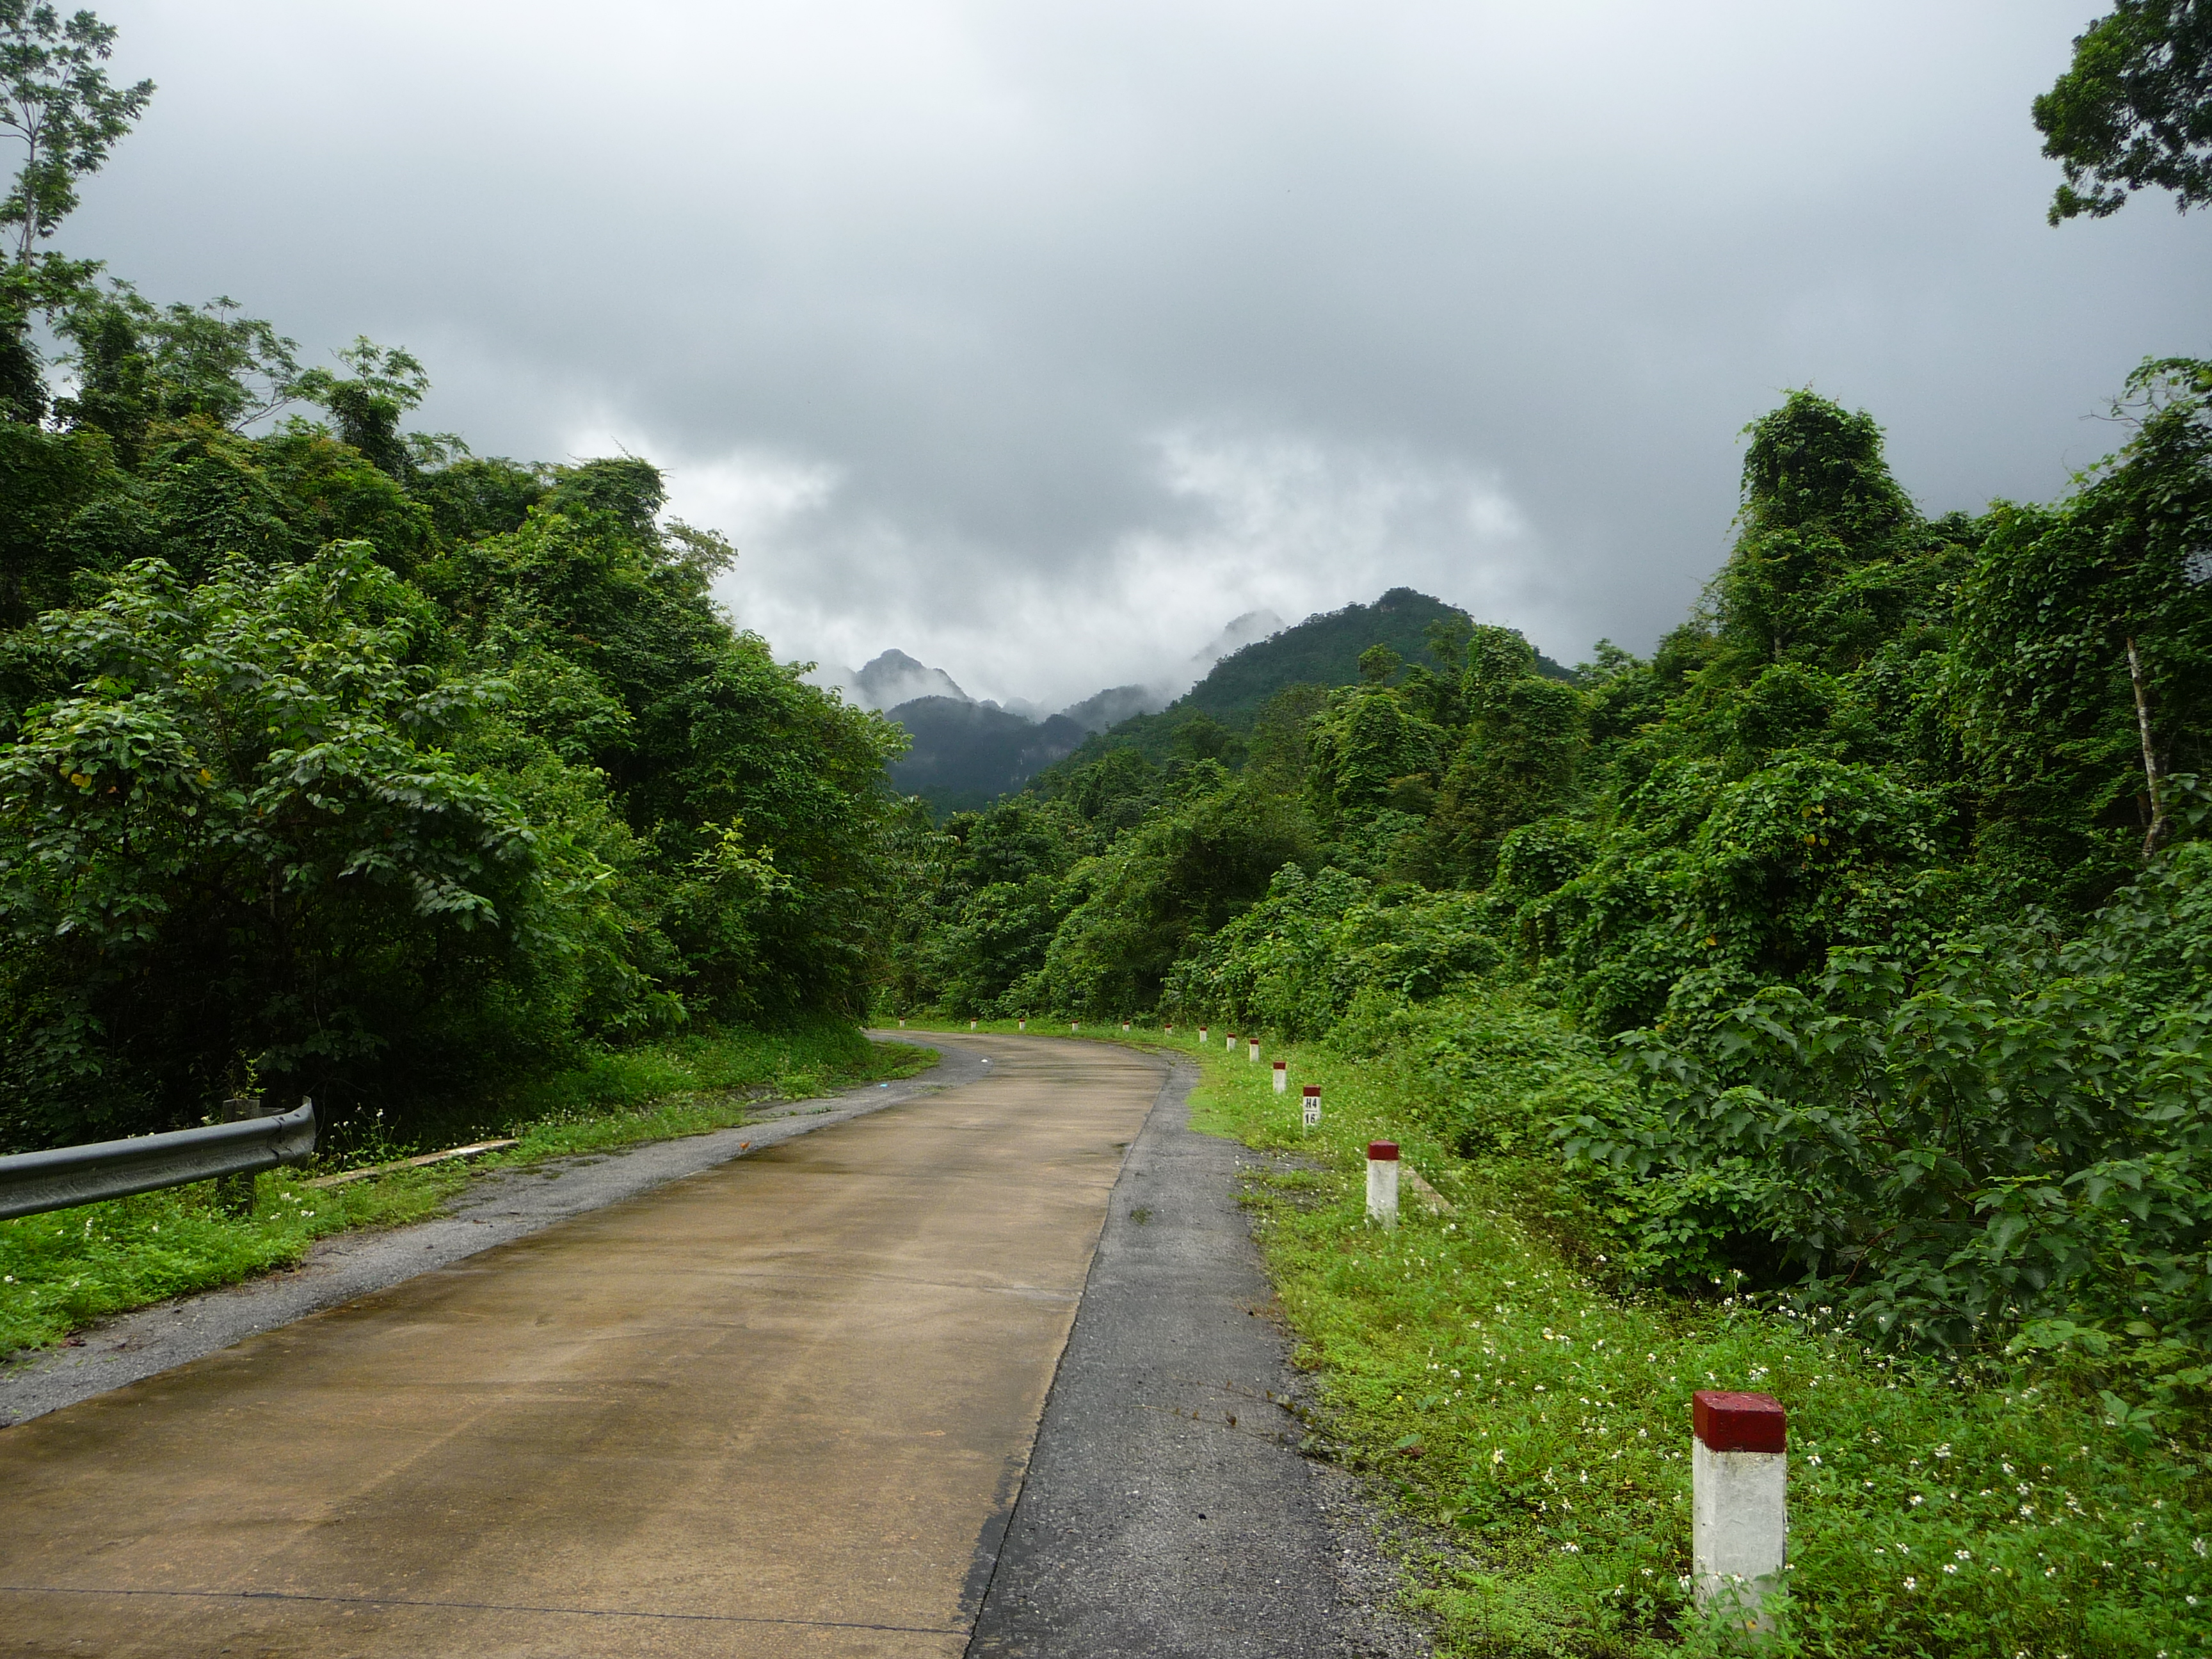 Vietnam By Motorcycle – Ninh Binh and On